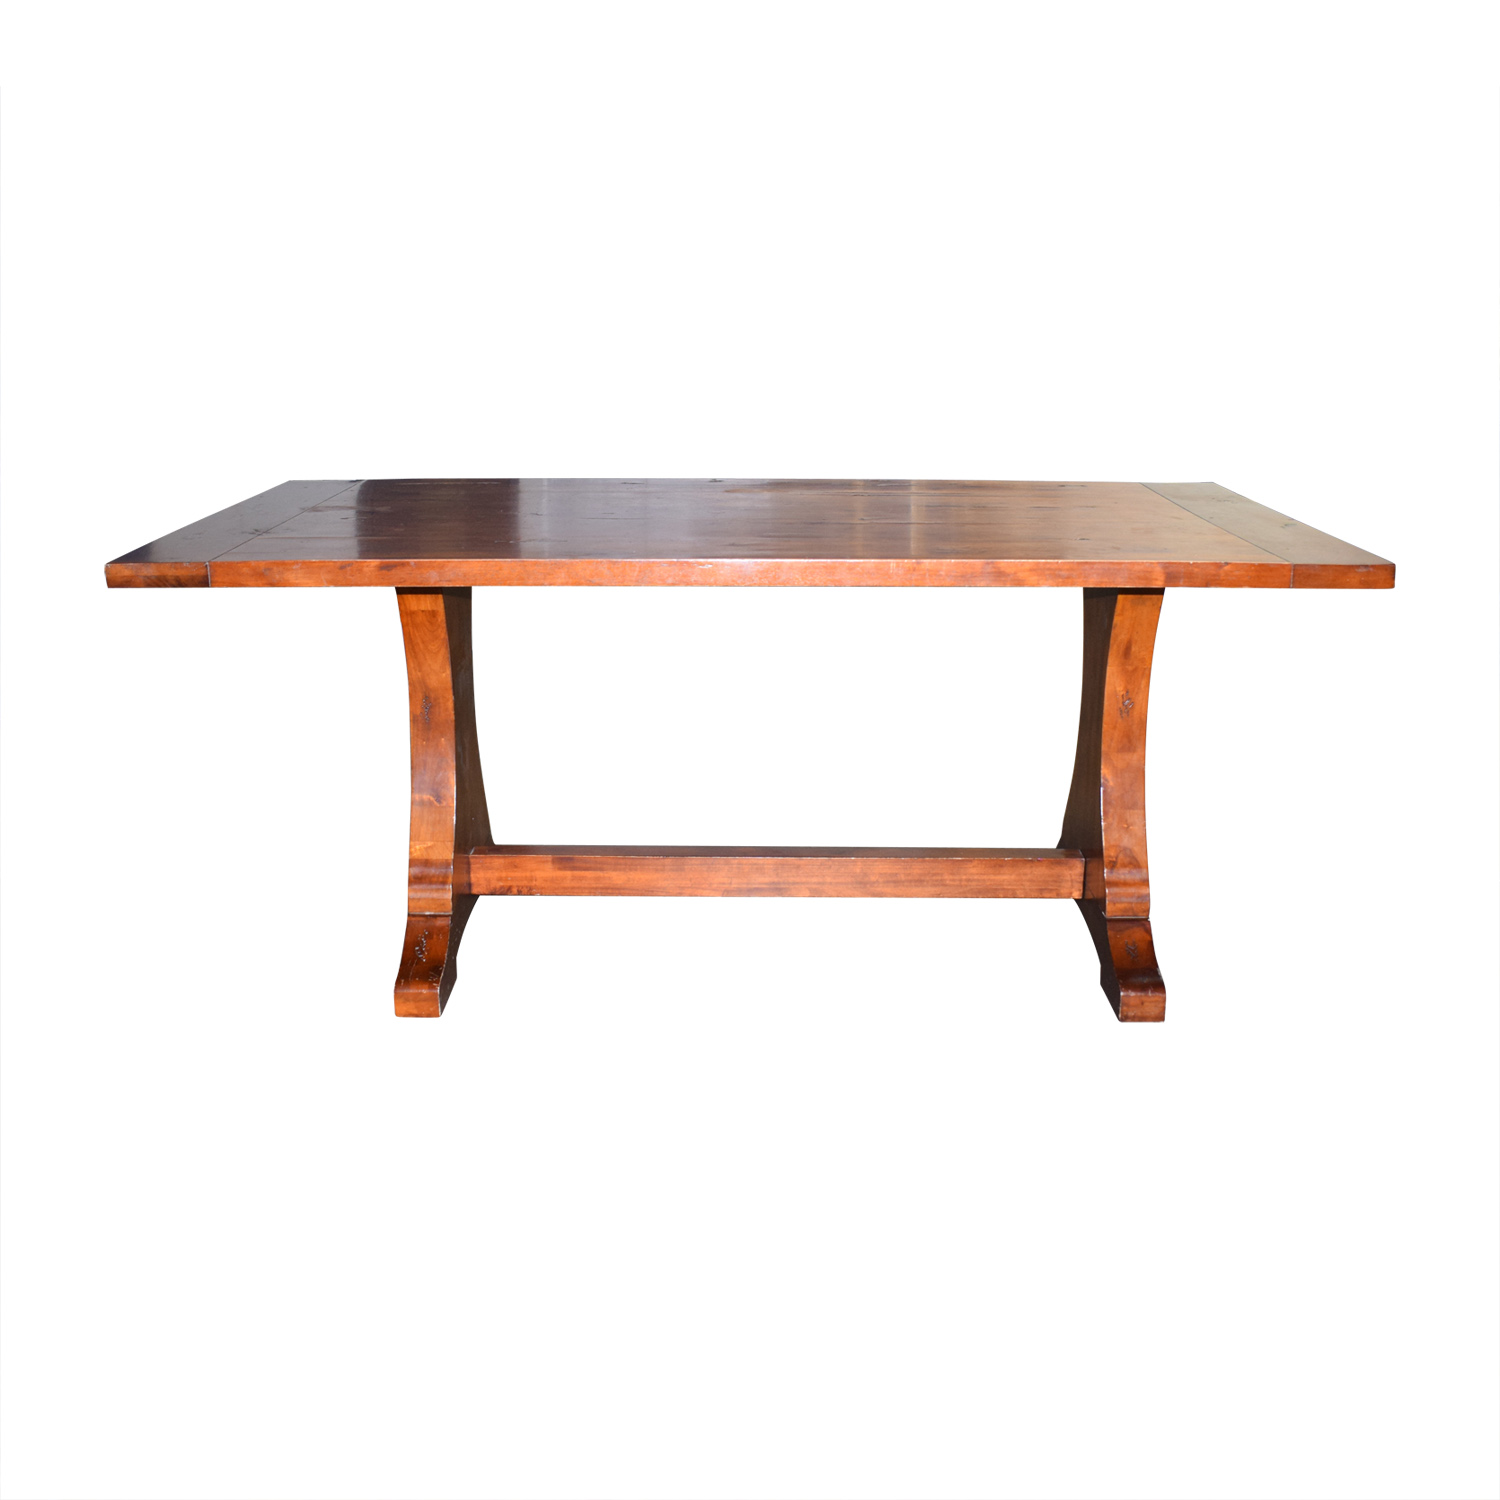 Dining Table Designs 78 Off Ballard Designs Ballard Designs Solid Walnut Dining Table Tables